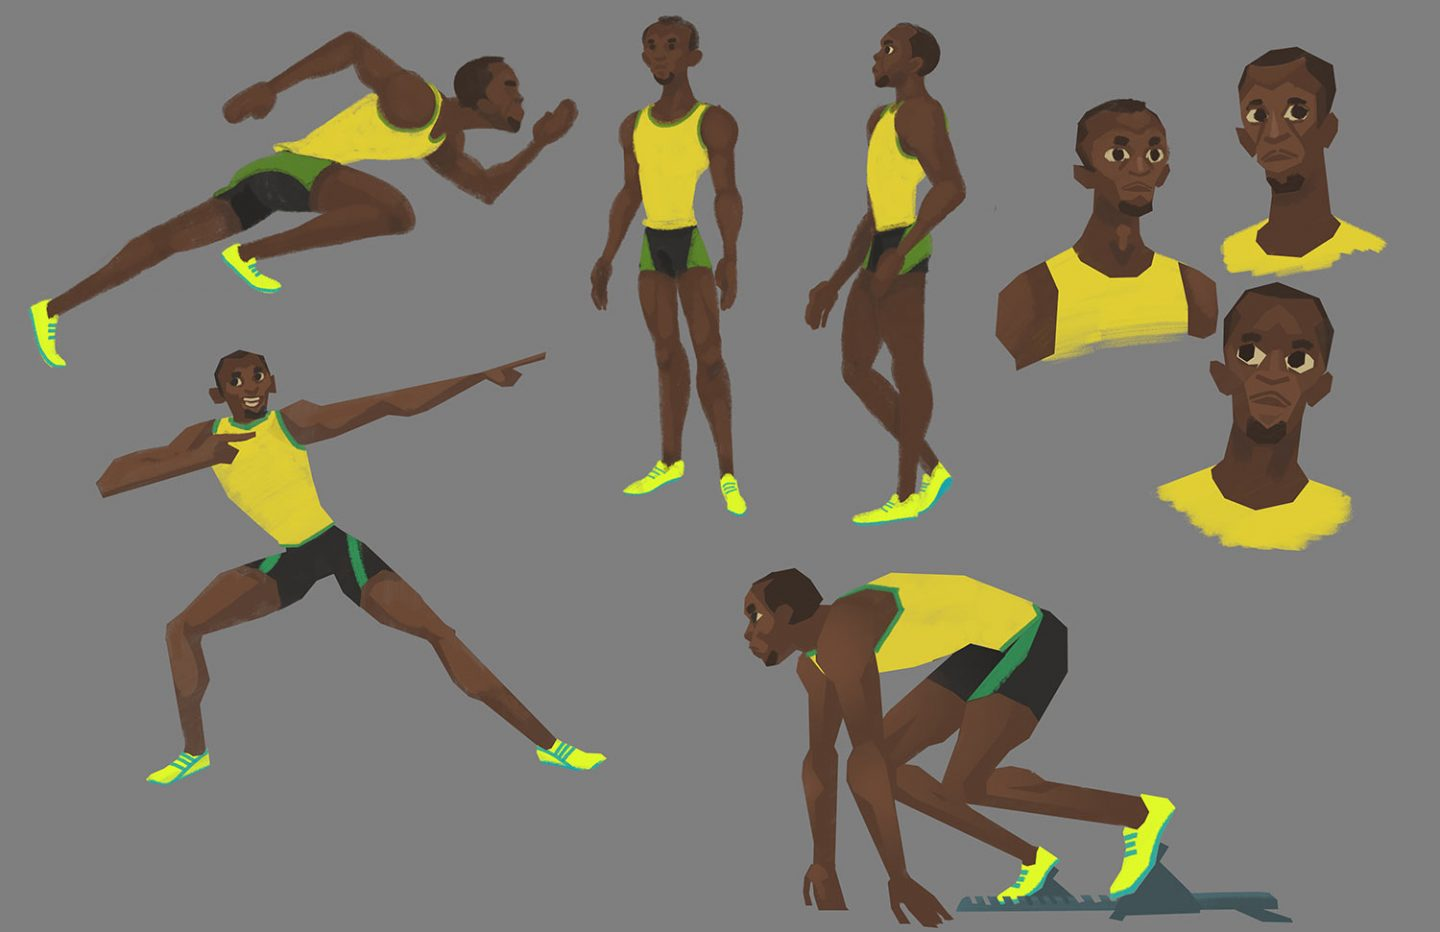 Usain Bolt character exploration by Kendra Phillips.